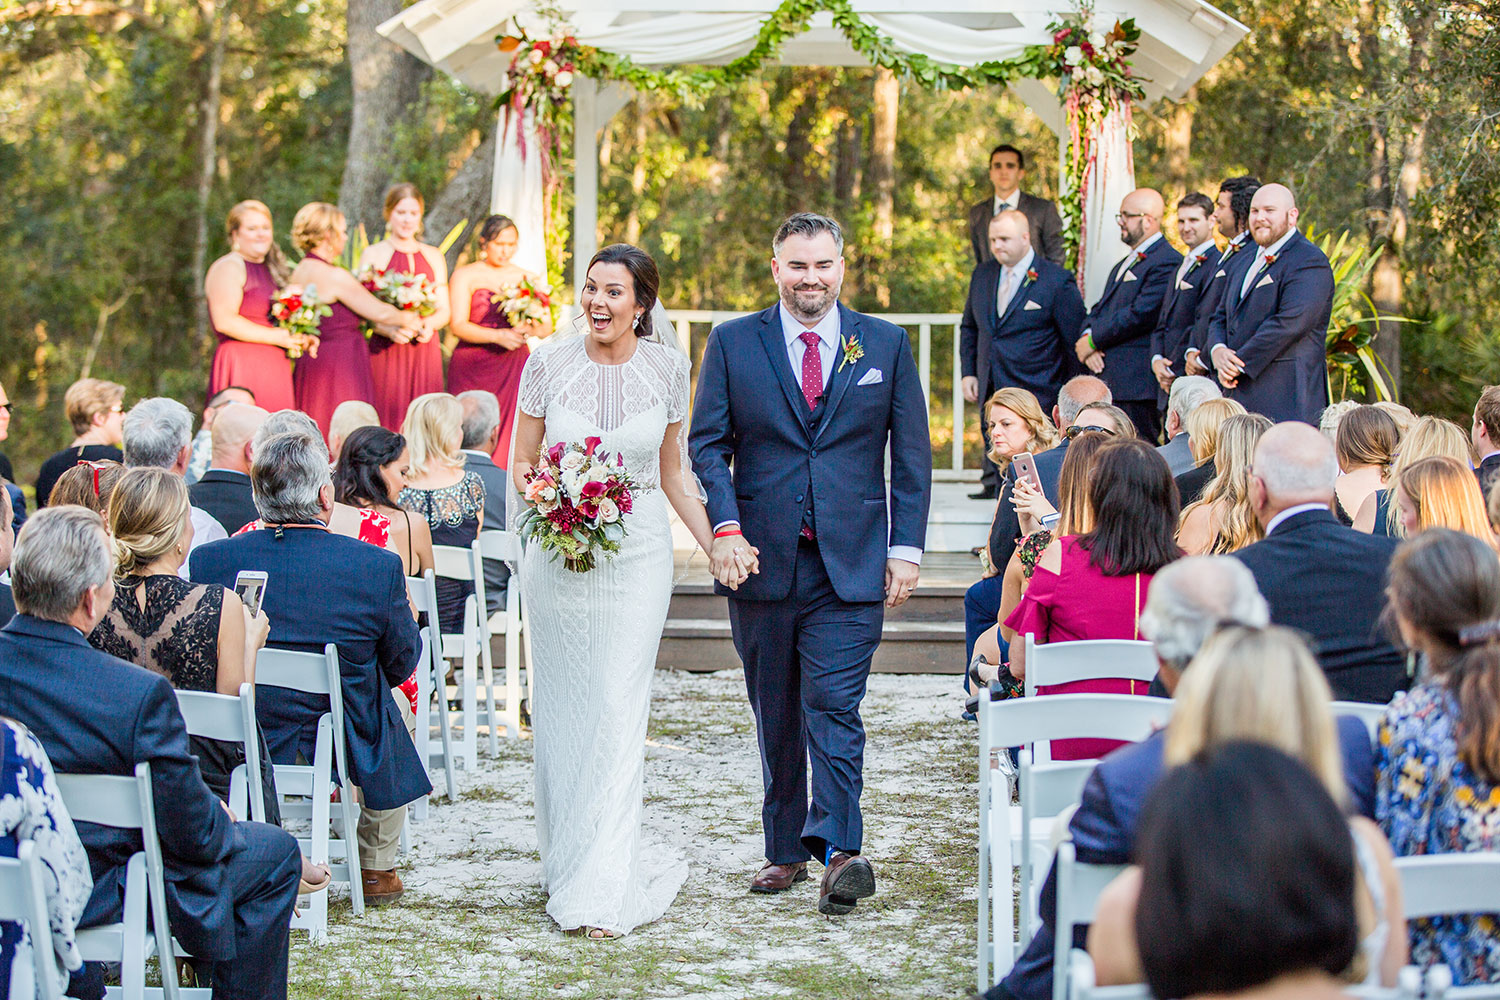 Janesk_Chandler_Oaks_Barn_Wedding-ceremony-jacksonville-florida.jpg